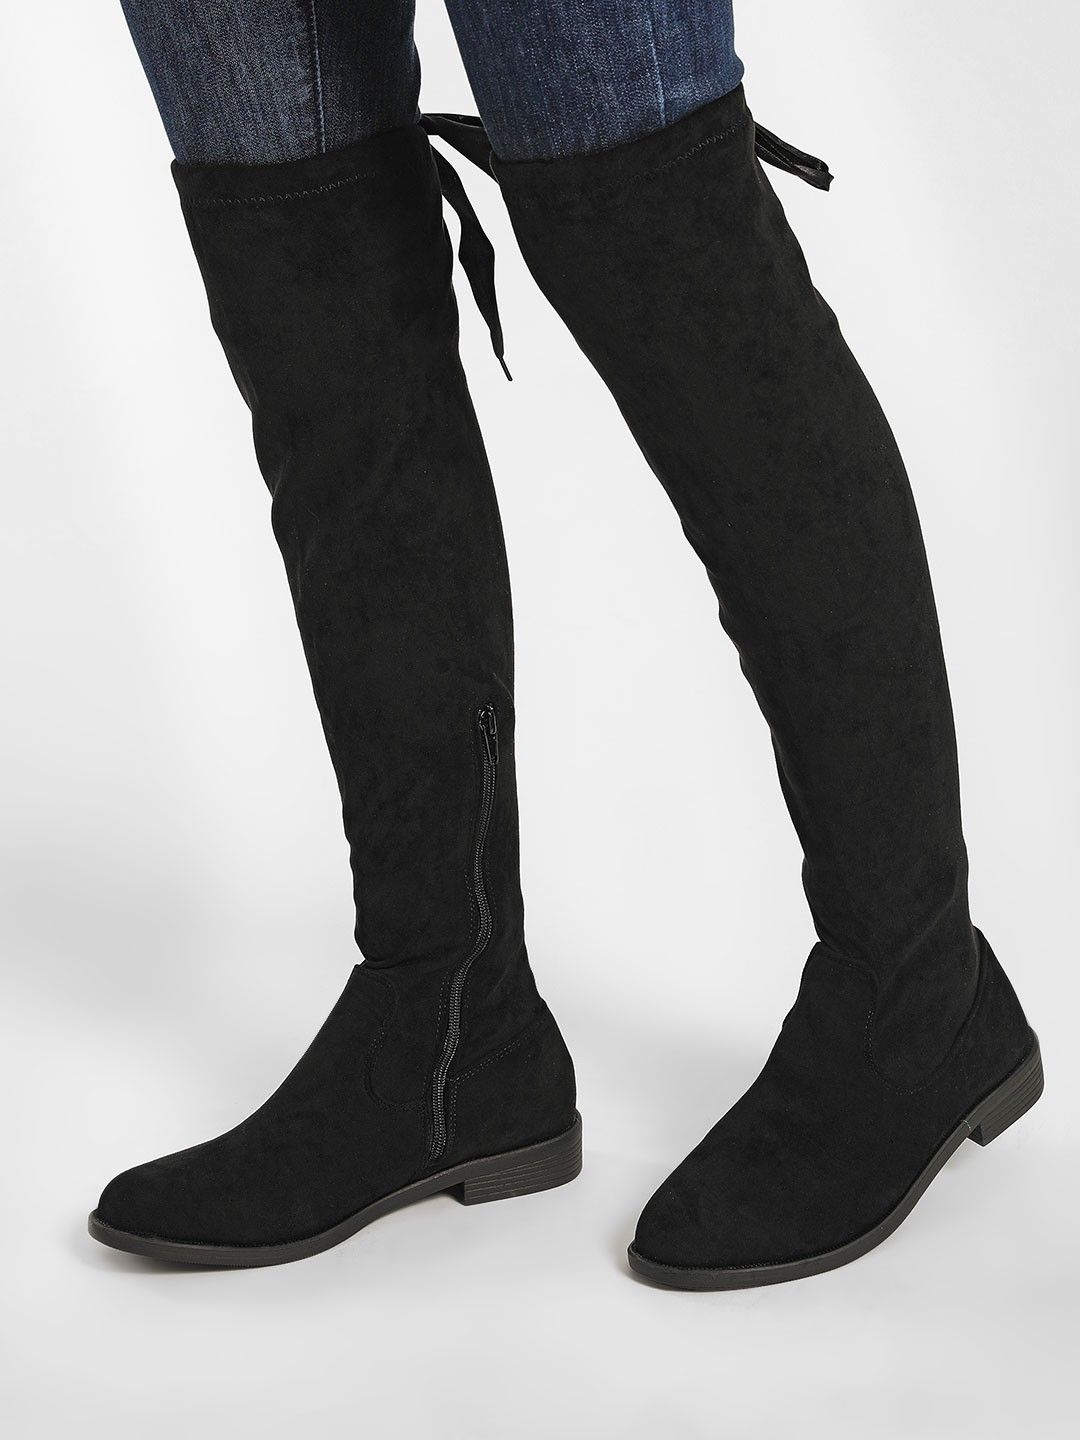 My Foot Couture Black Suede Finish Knee High Boots 1